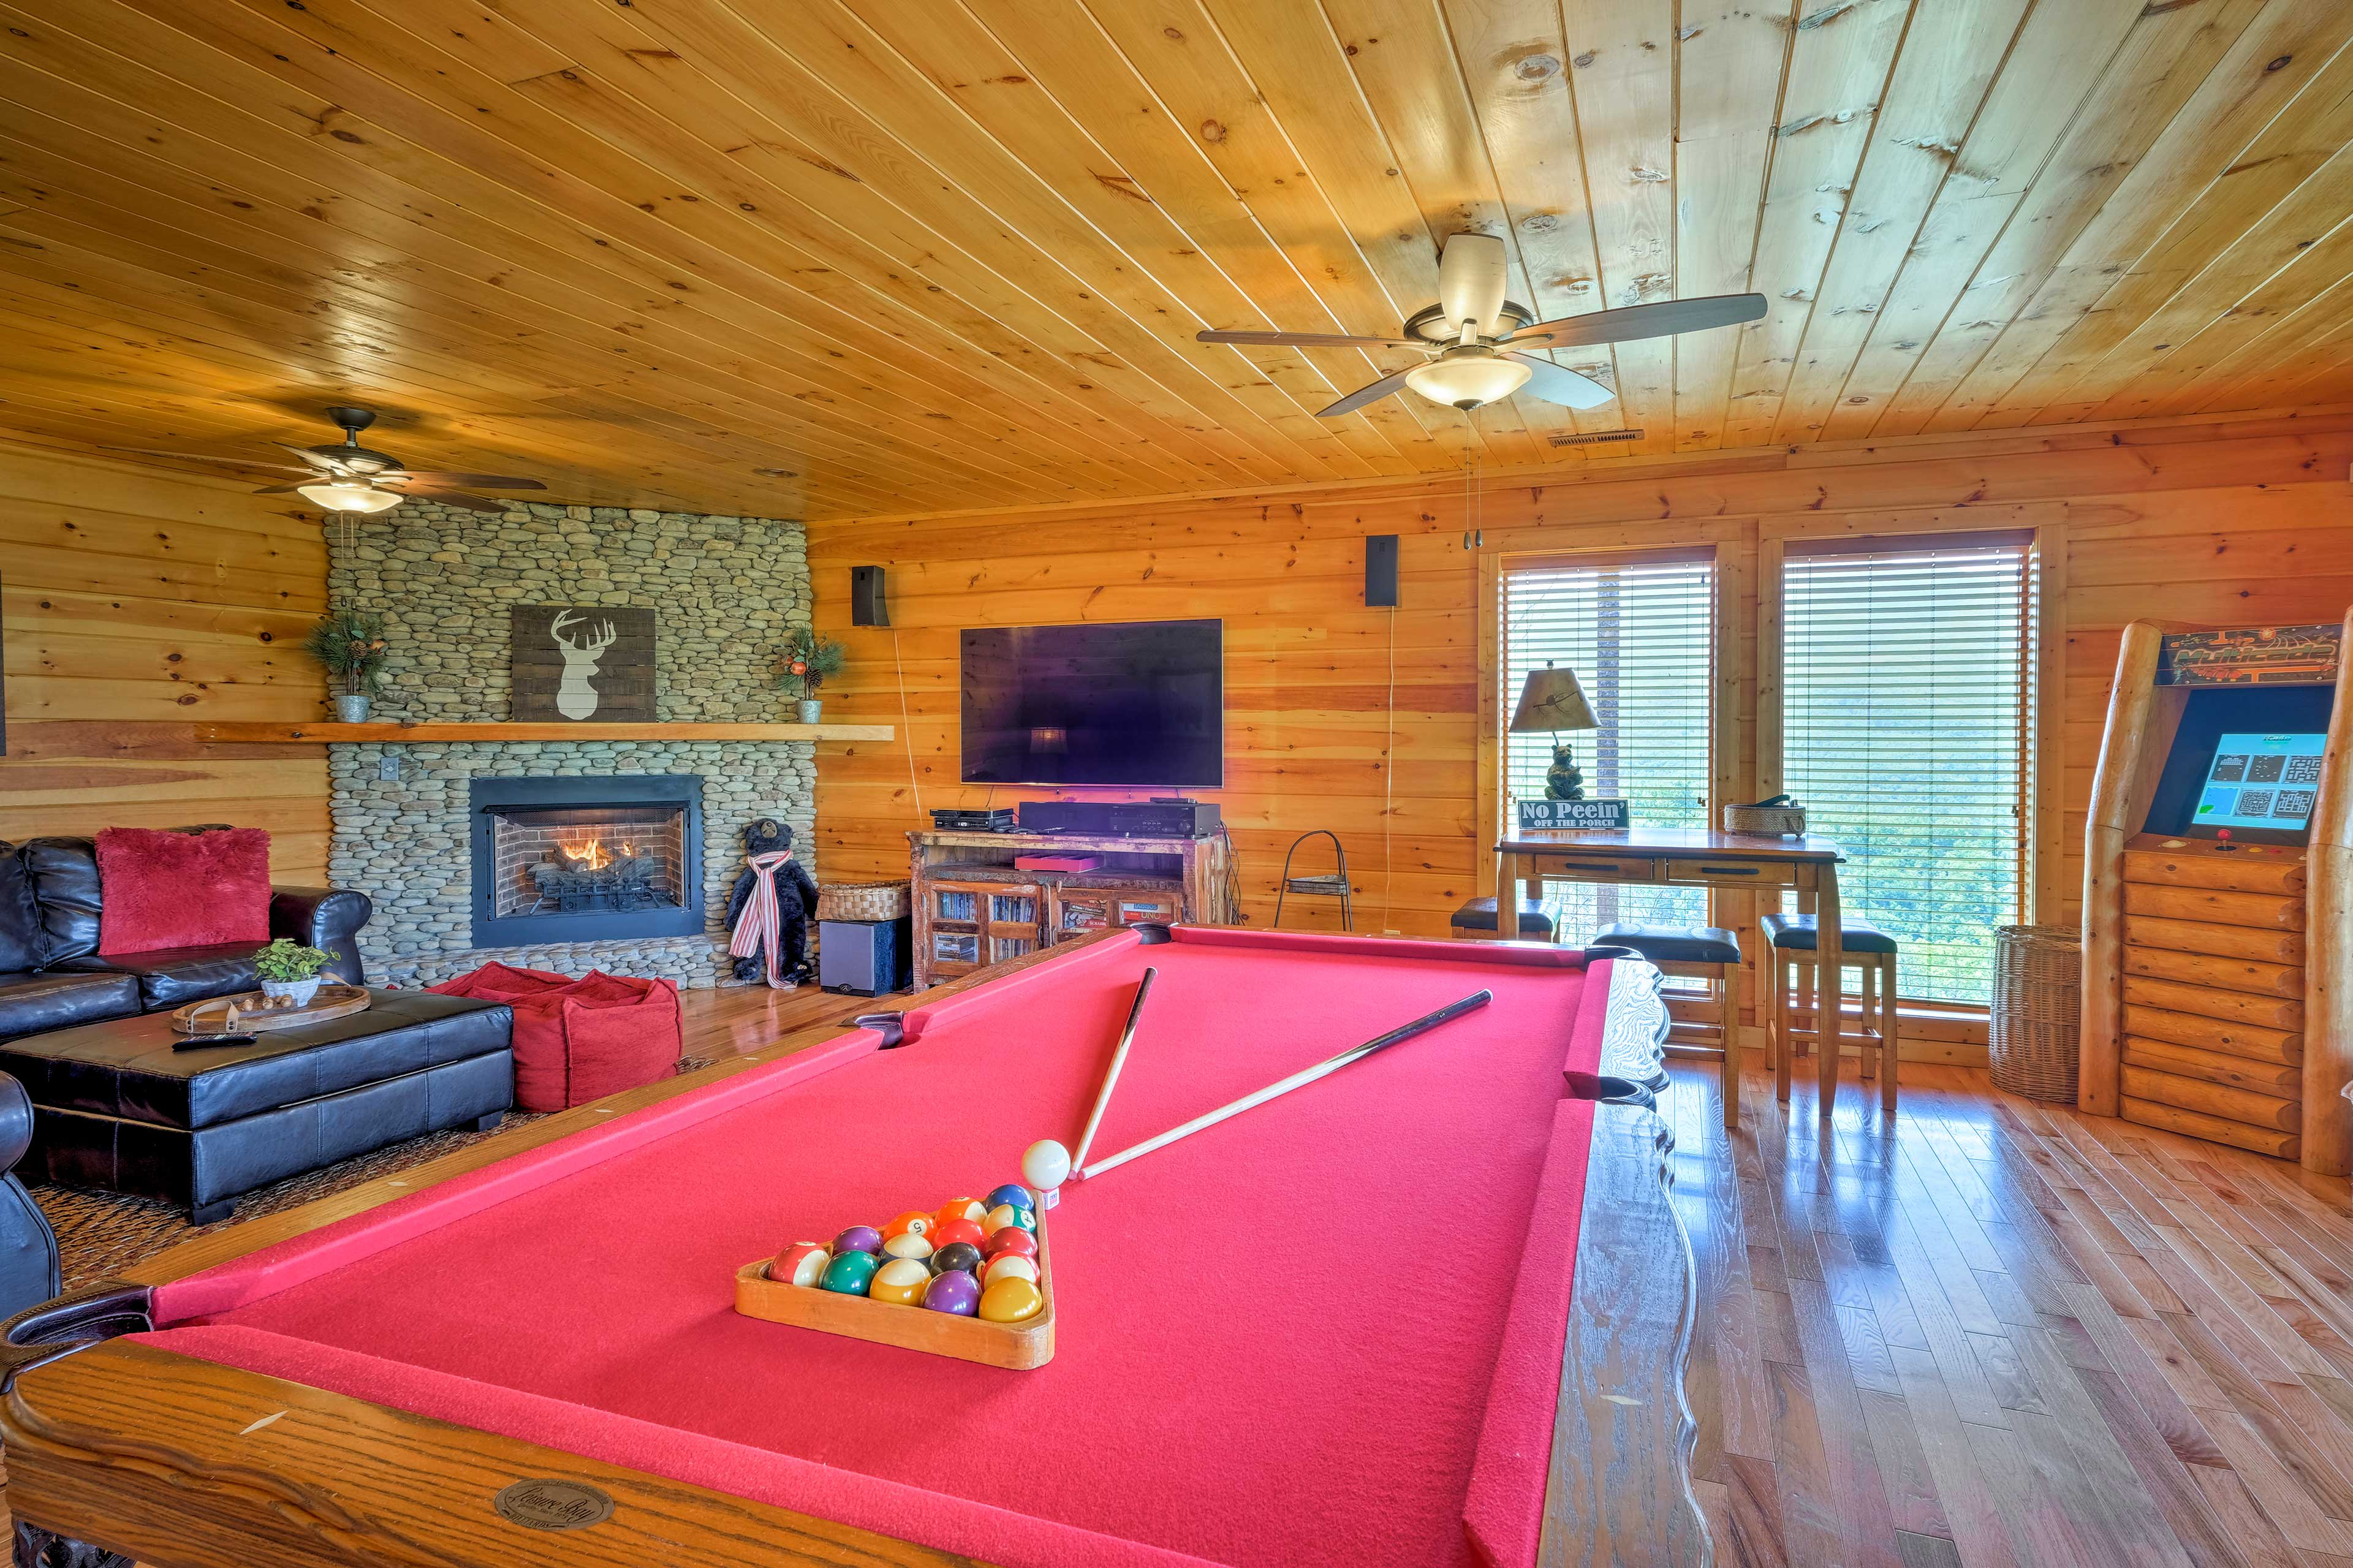 This massive cabin offers 4 bedrooms and 3 bathrooms, and fun for everyone!